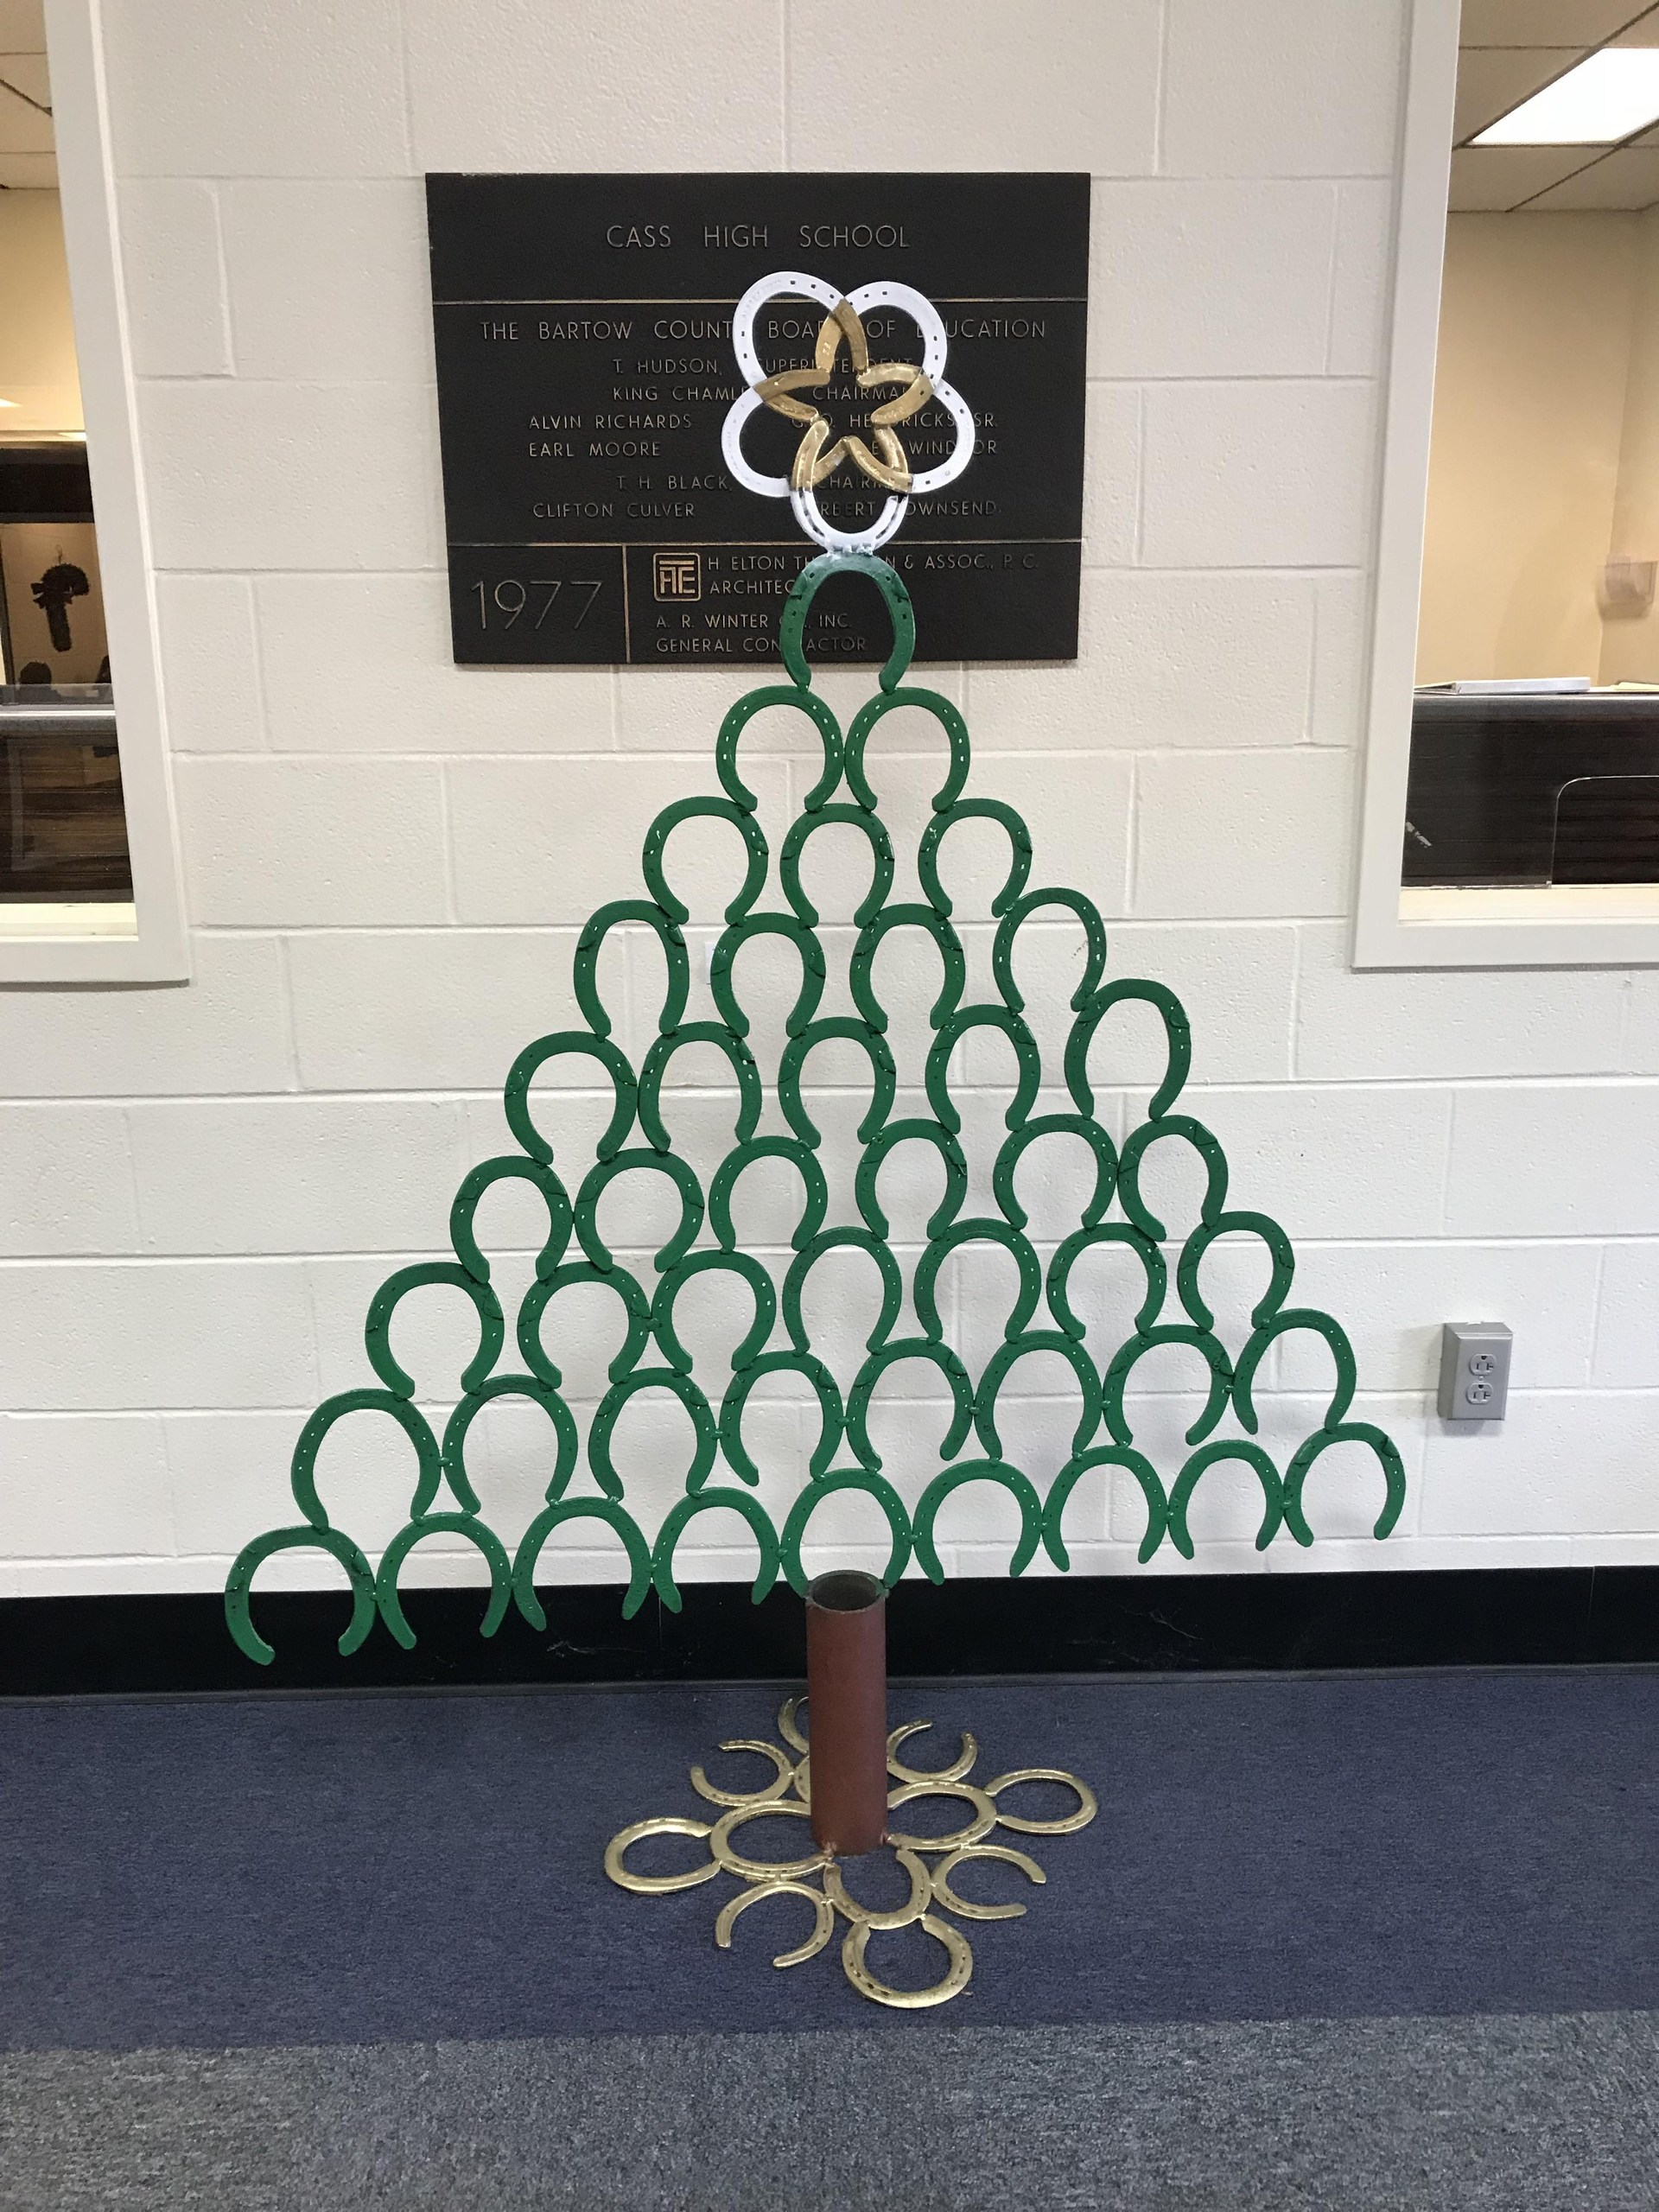 The welding students created this Christmas tree from horseshoes.